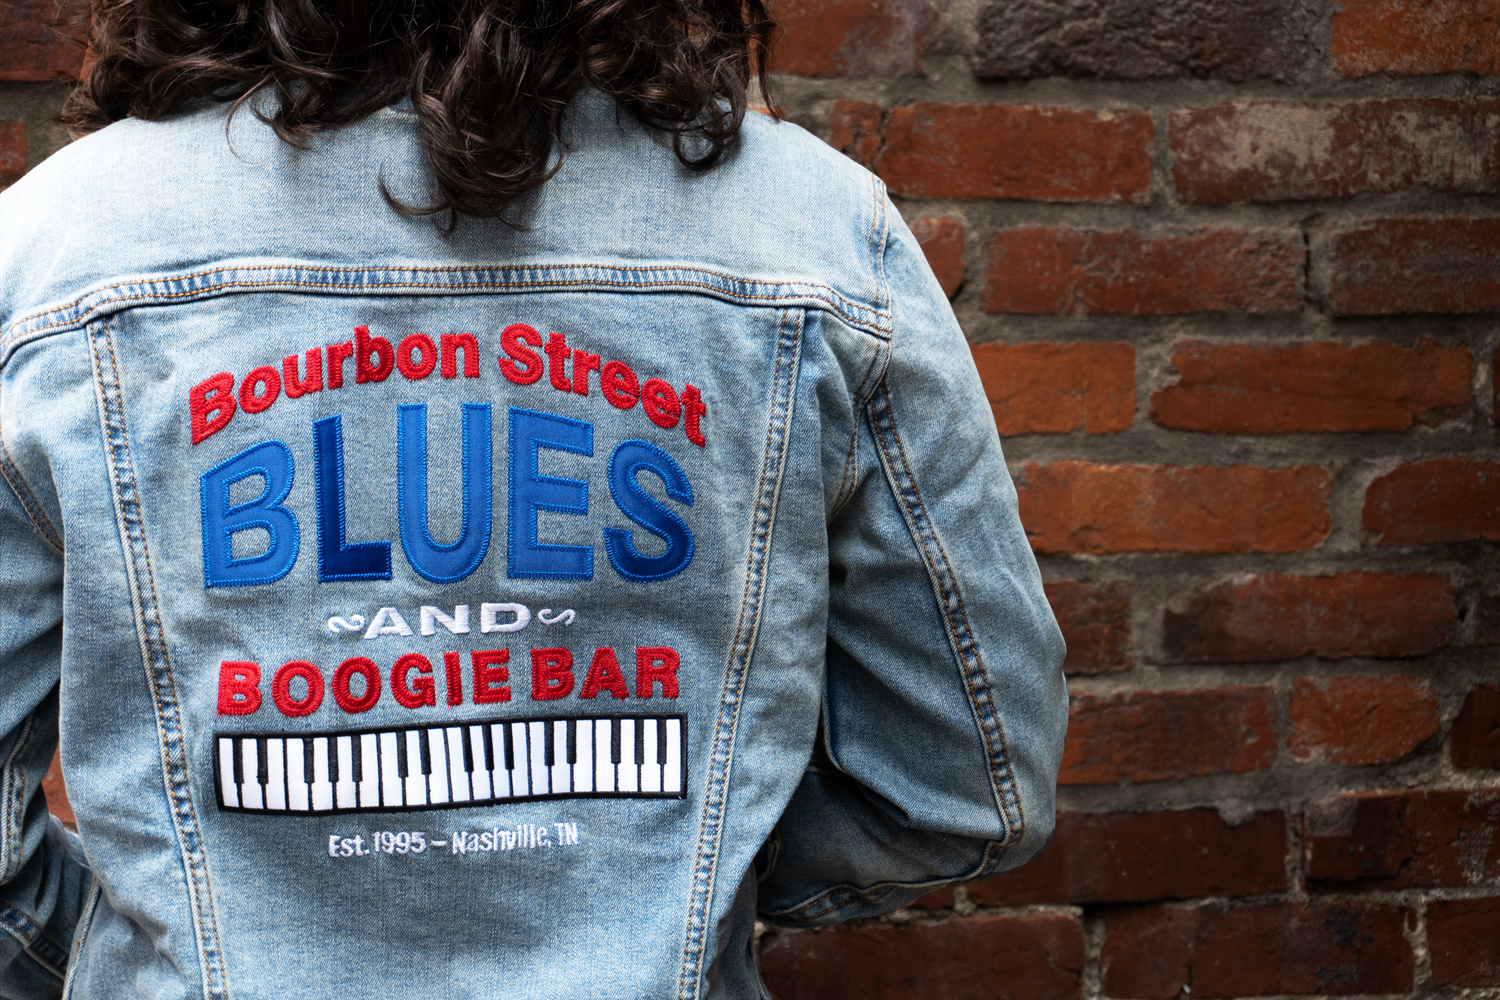 Bourbon Street Blues and Boogie Bar's 25th Anniversary Denim Jacket